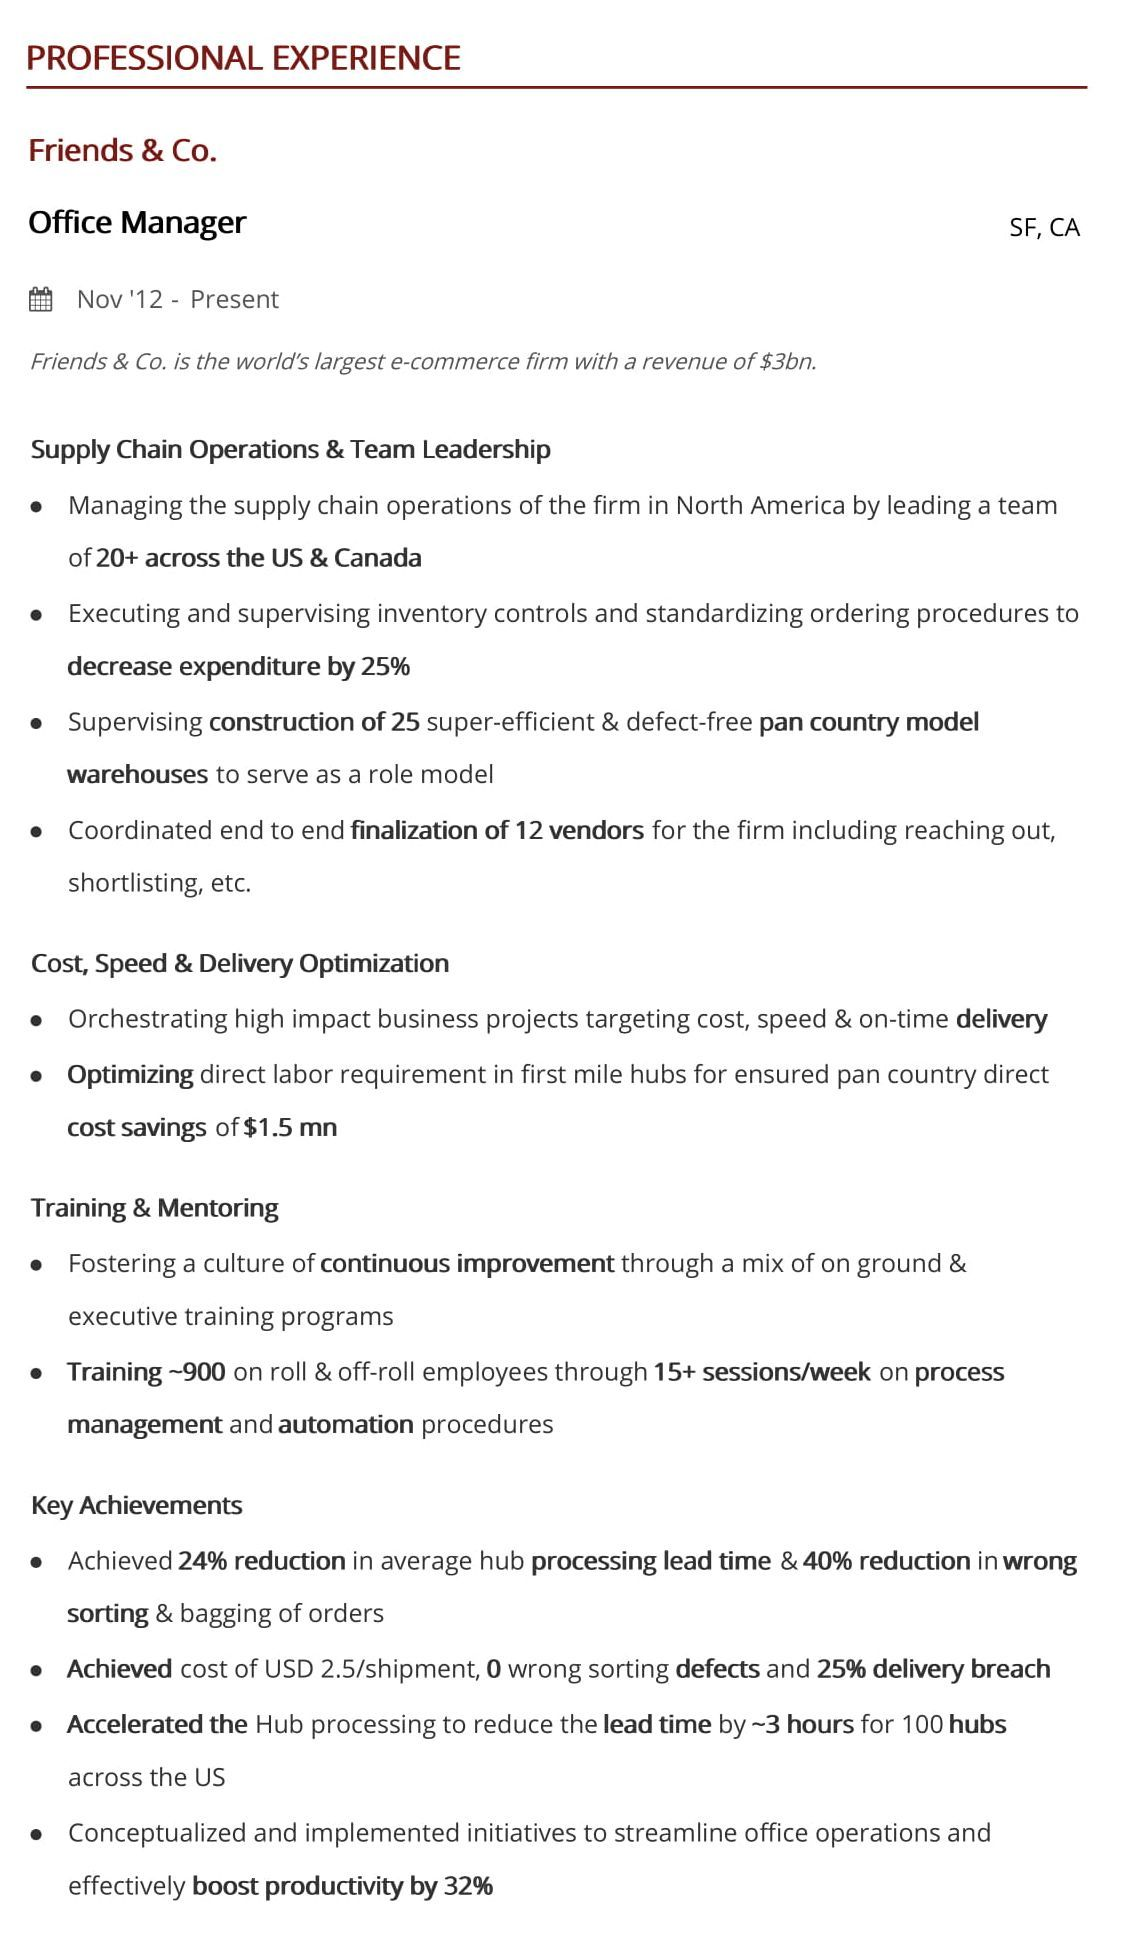 office manager resume step guide with samples examples hiration sample professional Resume Office Manager Resume Examples 2020